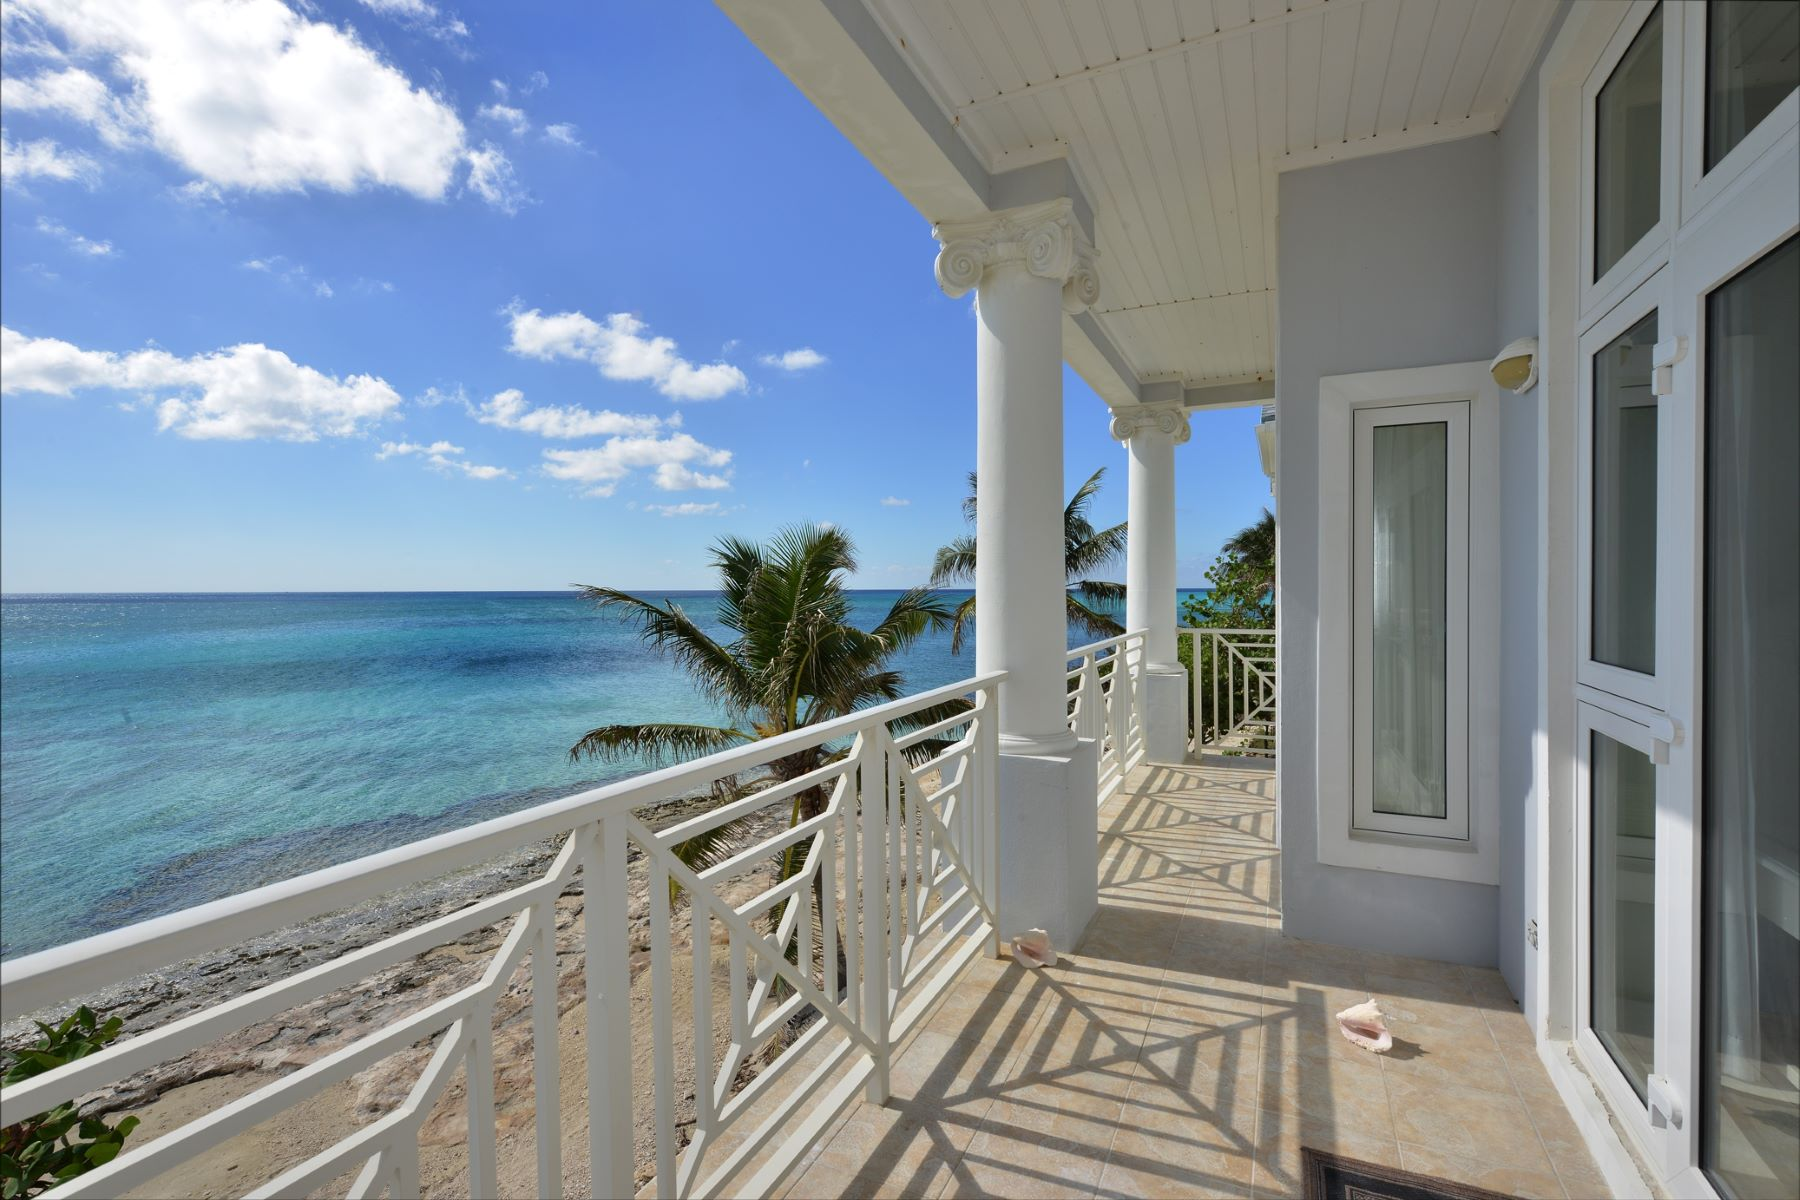 Casa unifamiliar adosada (Townhouse) por un Alquiler en Royall Beach Estates K-17, South Ocean Royall Beach Estates, South Ocean, Nueva Providencia / Nassau Bahamas